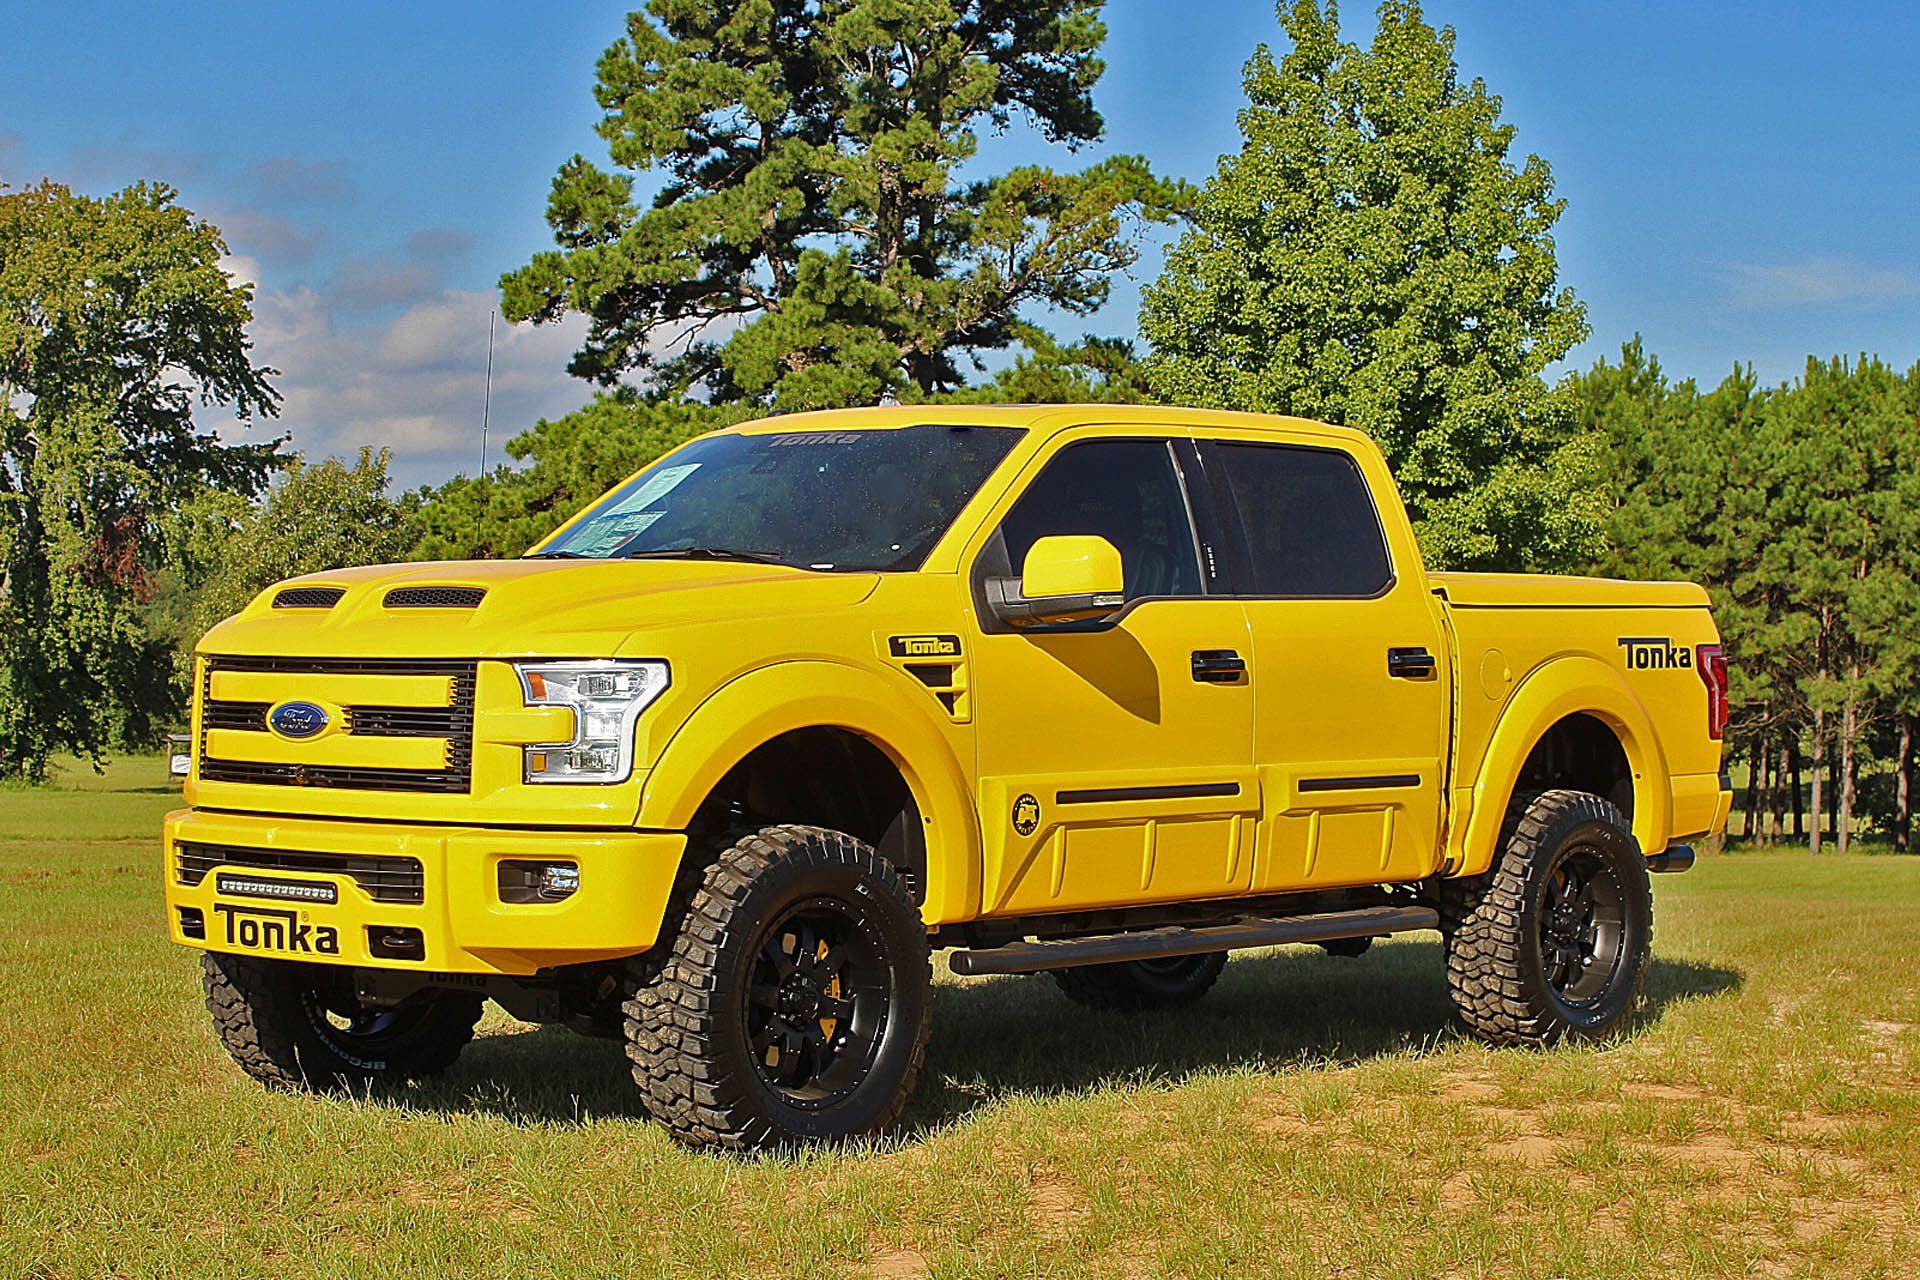 2016 ford f150 tonka truck by tuscany this one is a bit bigger than the tonka trucks i had as a. Black Bedroom Furniture Sets. Home Design Ideas